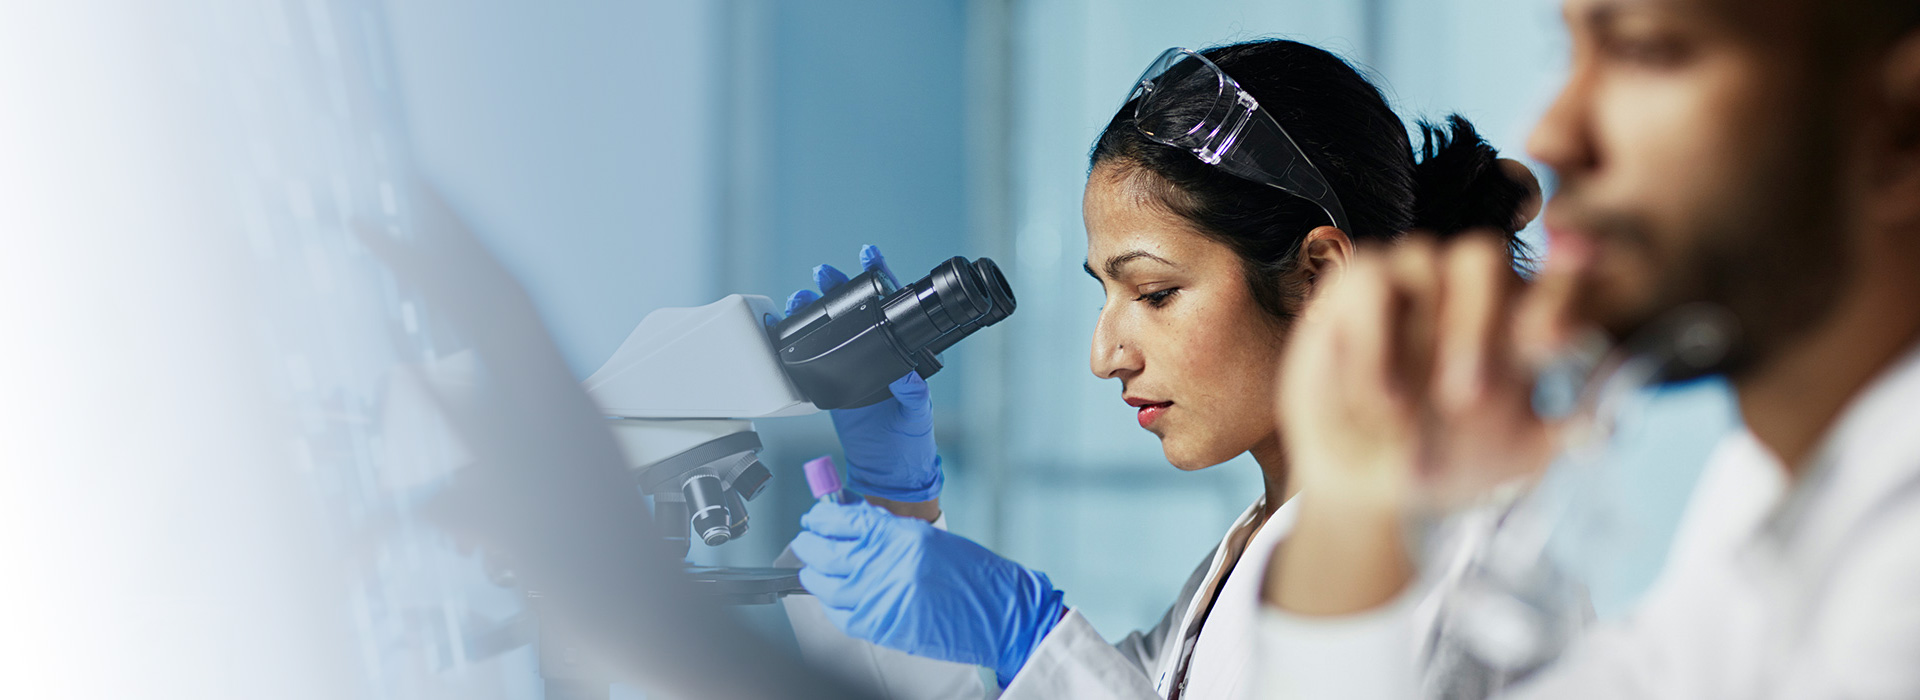 Photograph of Pall associate using microscope in lab